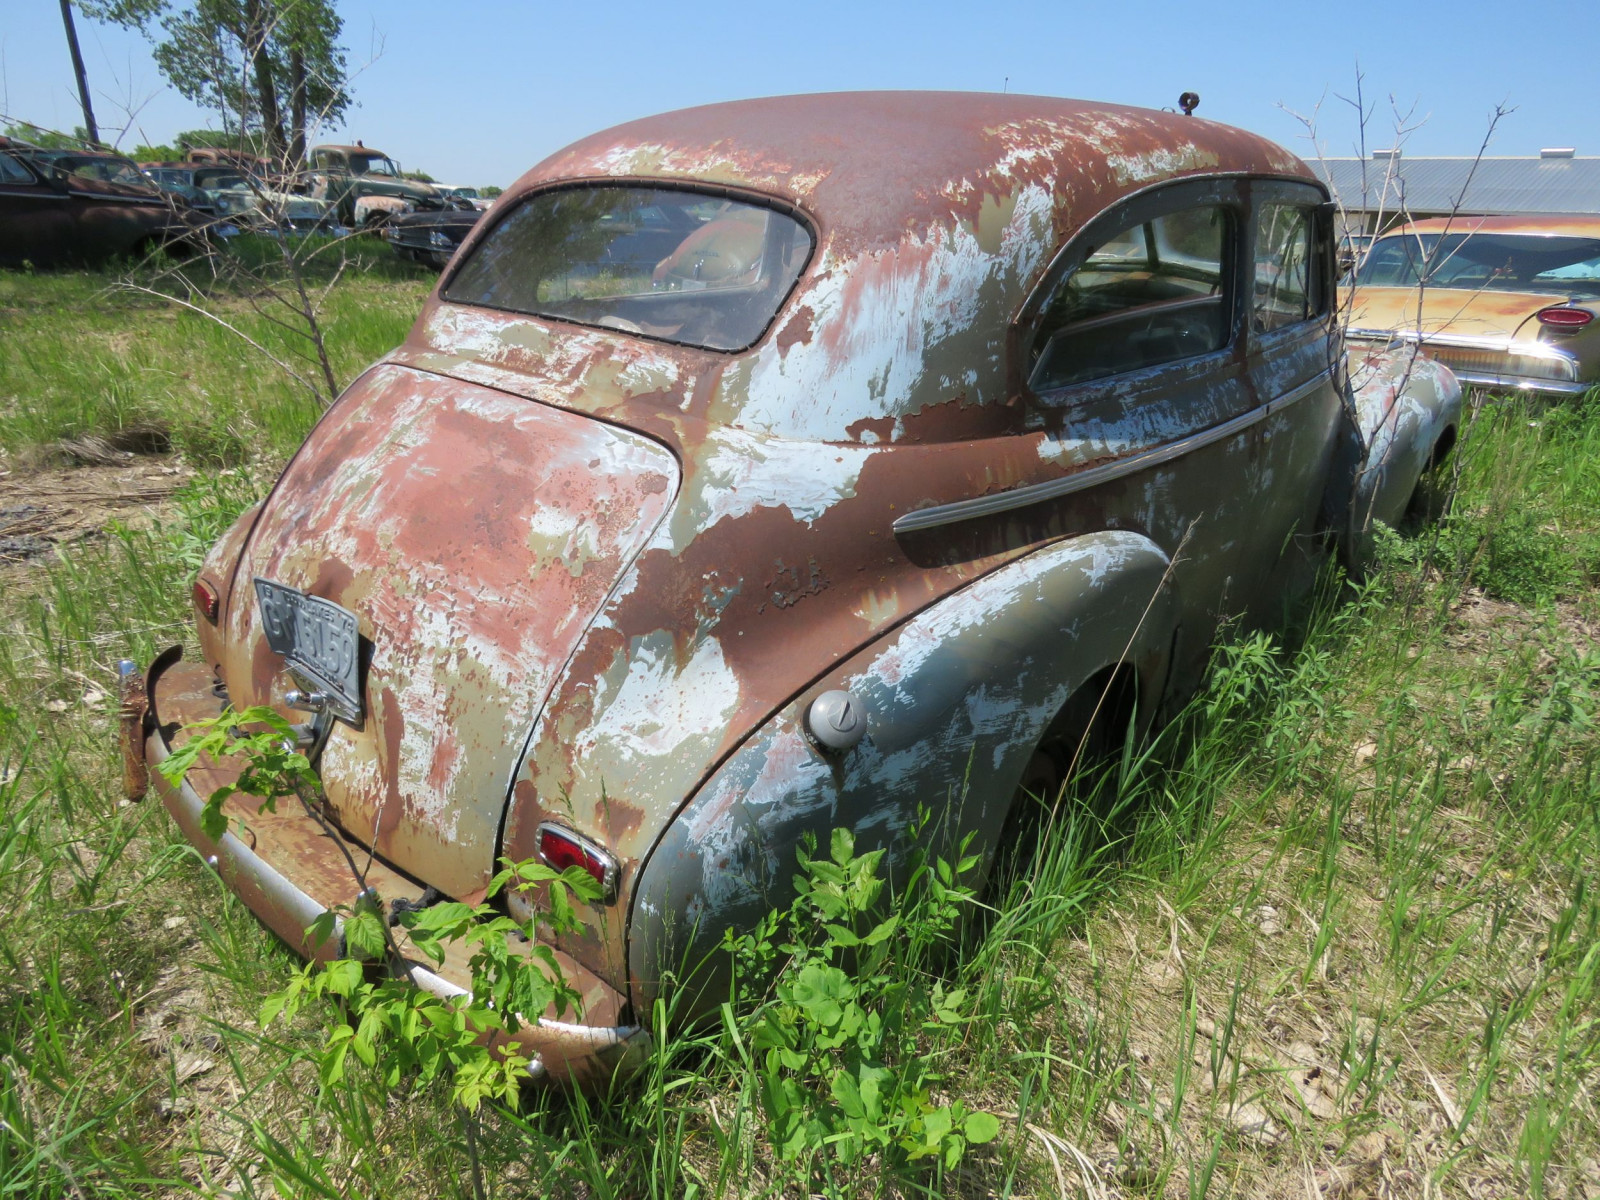 1941 Chevrolet 2dr Sedan for Project or parts - Image 6